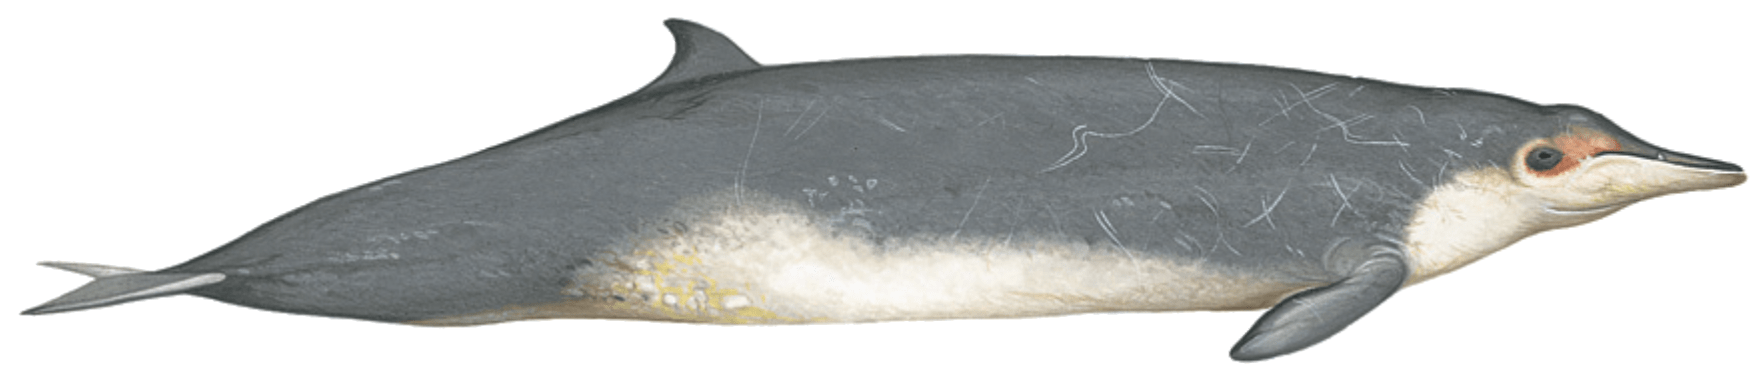 sowerbys beaked whale illustration by Martin Camm